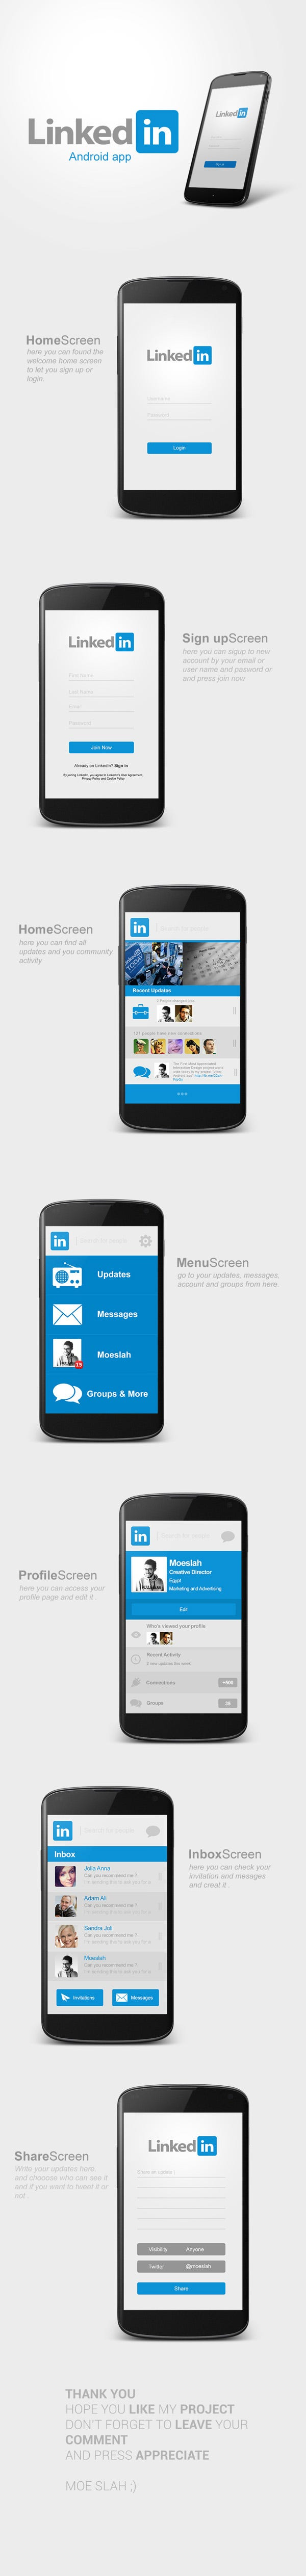 LinkedIn Android App Design